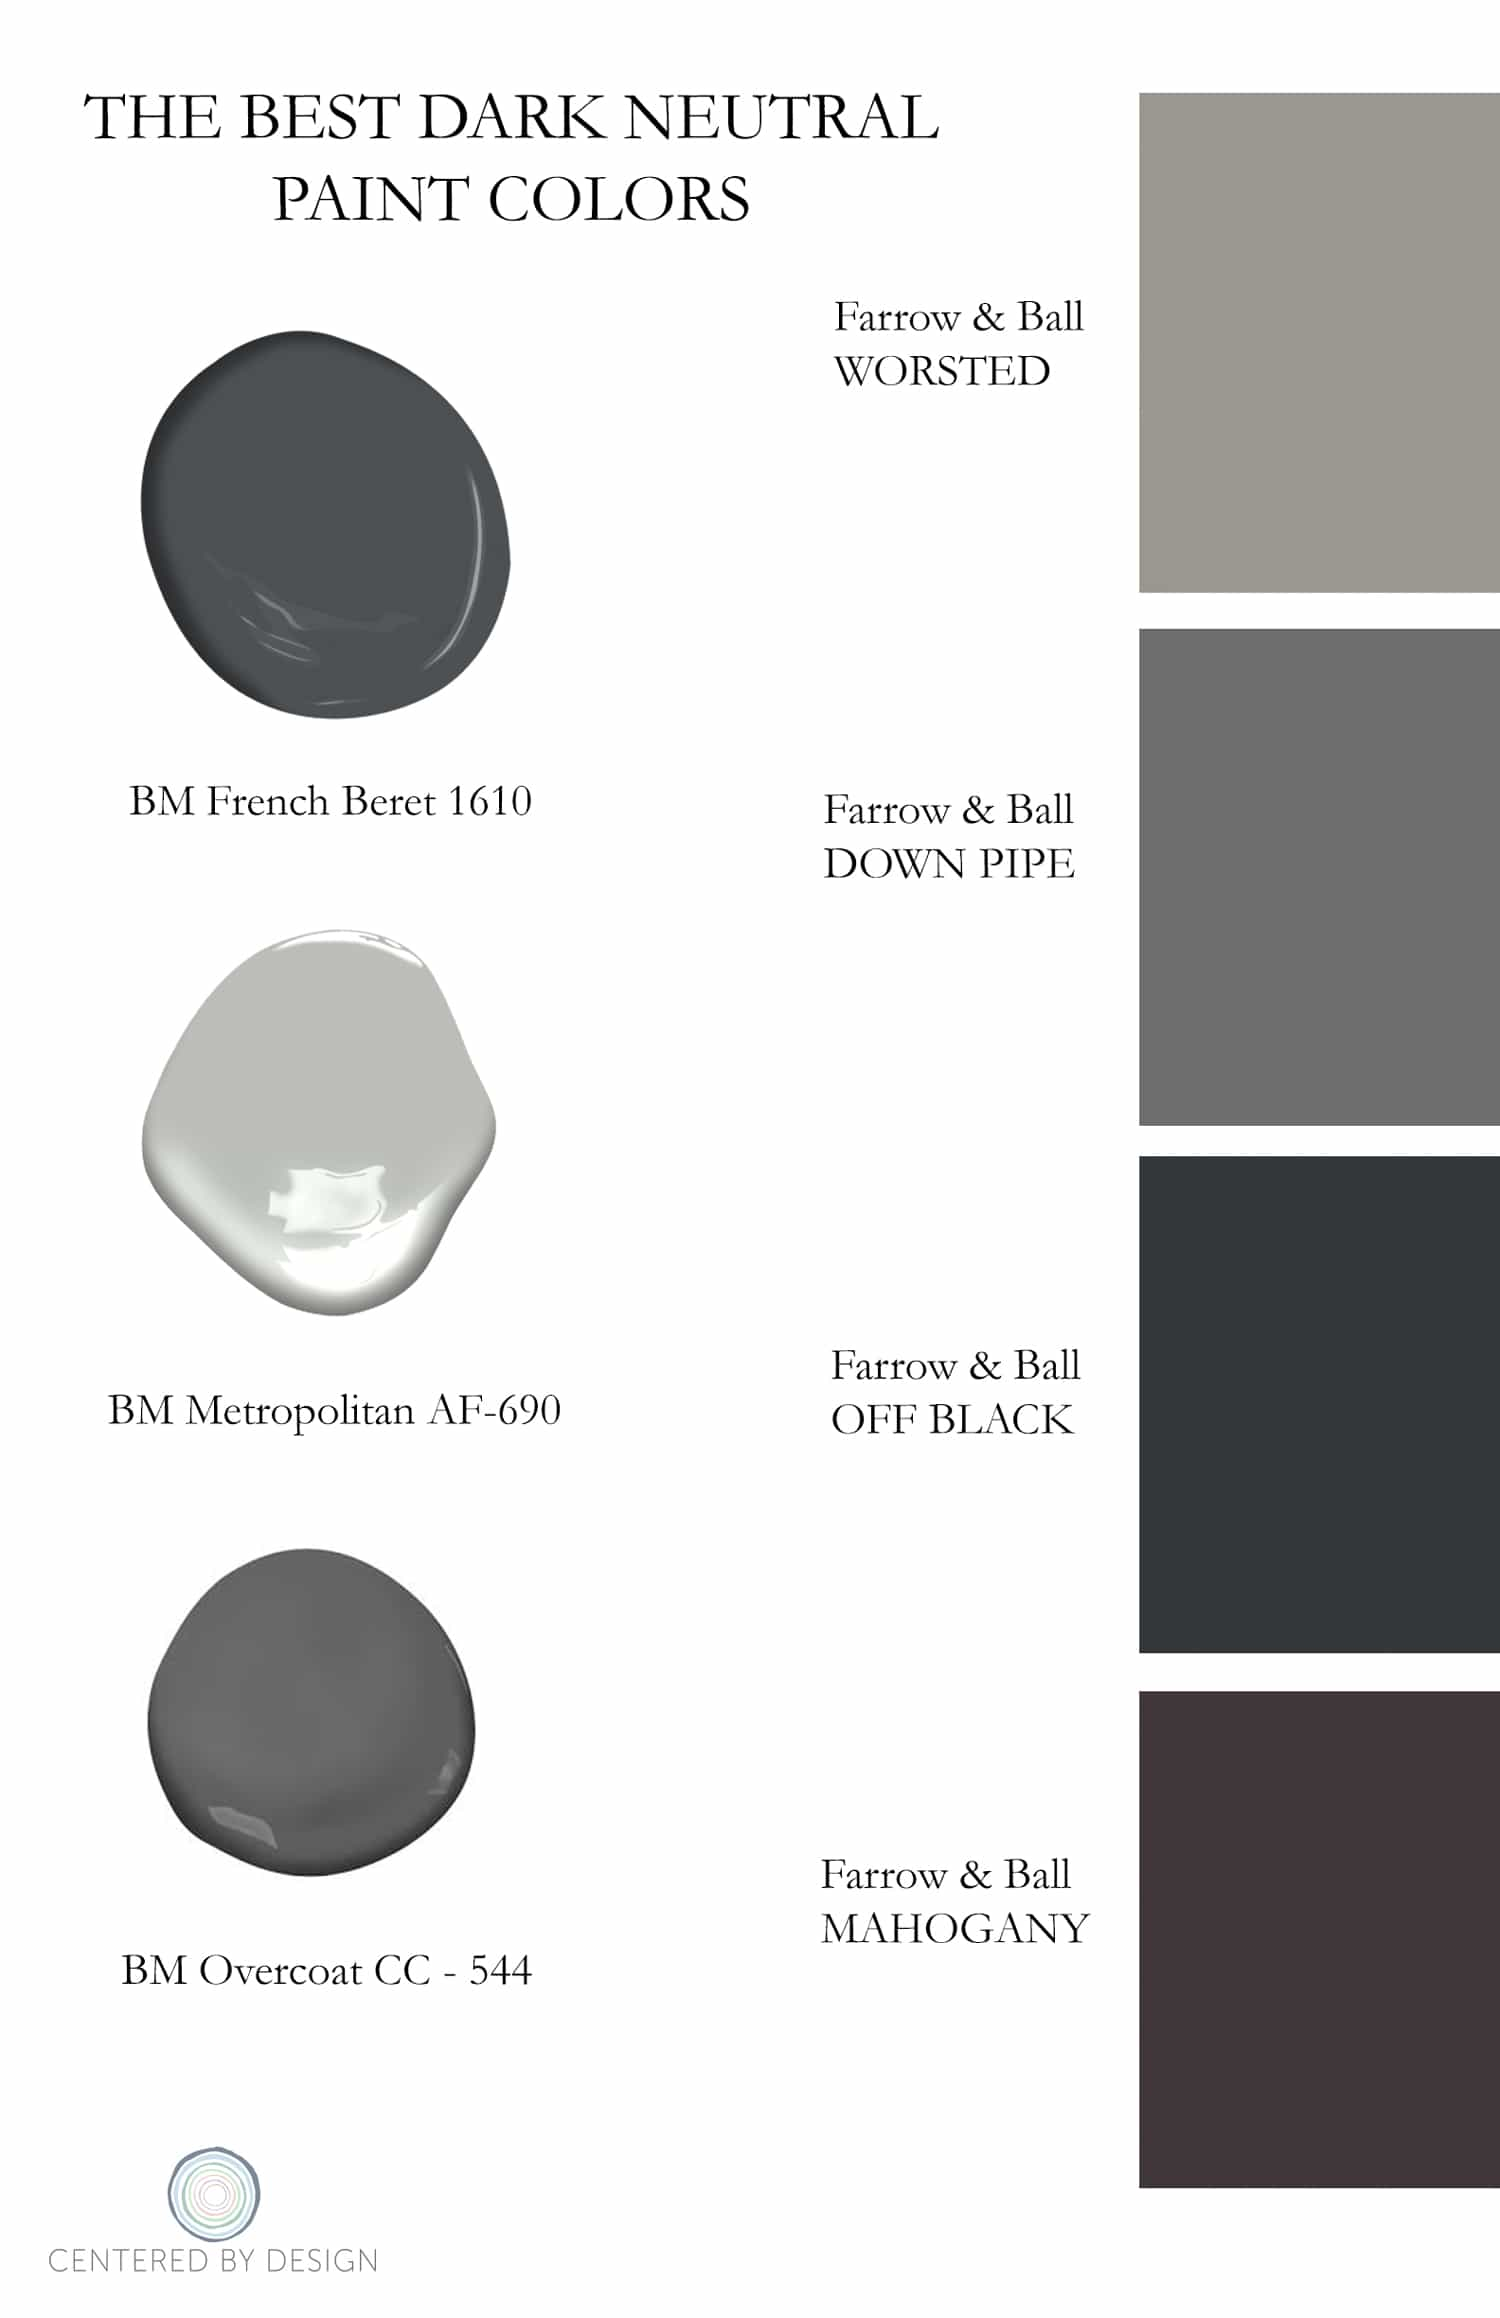 Accent Room Colors The Best Dark Paint Colors To Use For Your Home Interior